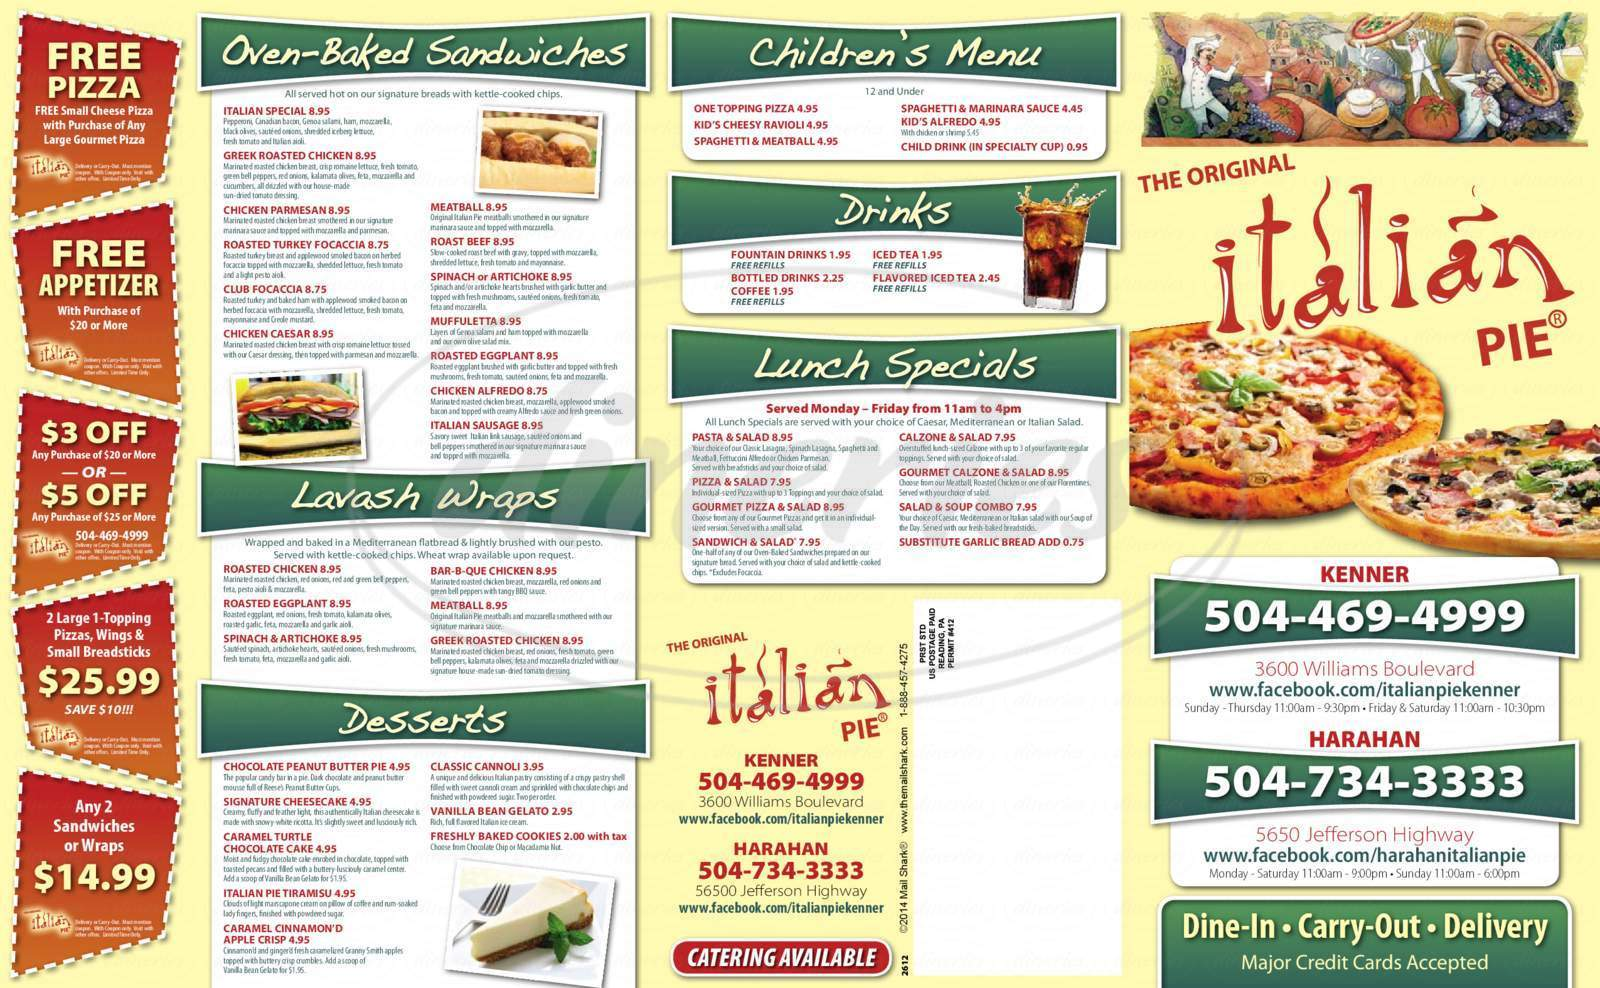 menu for The Original Italian Pie Harahan